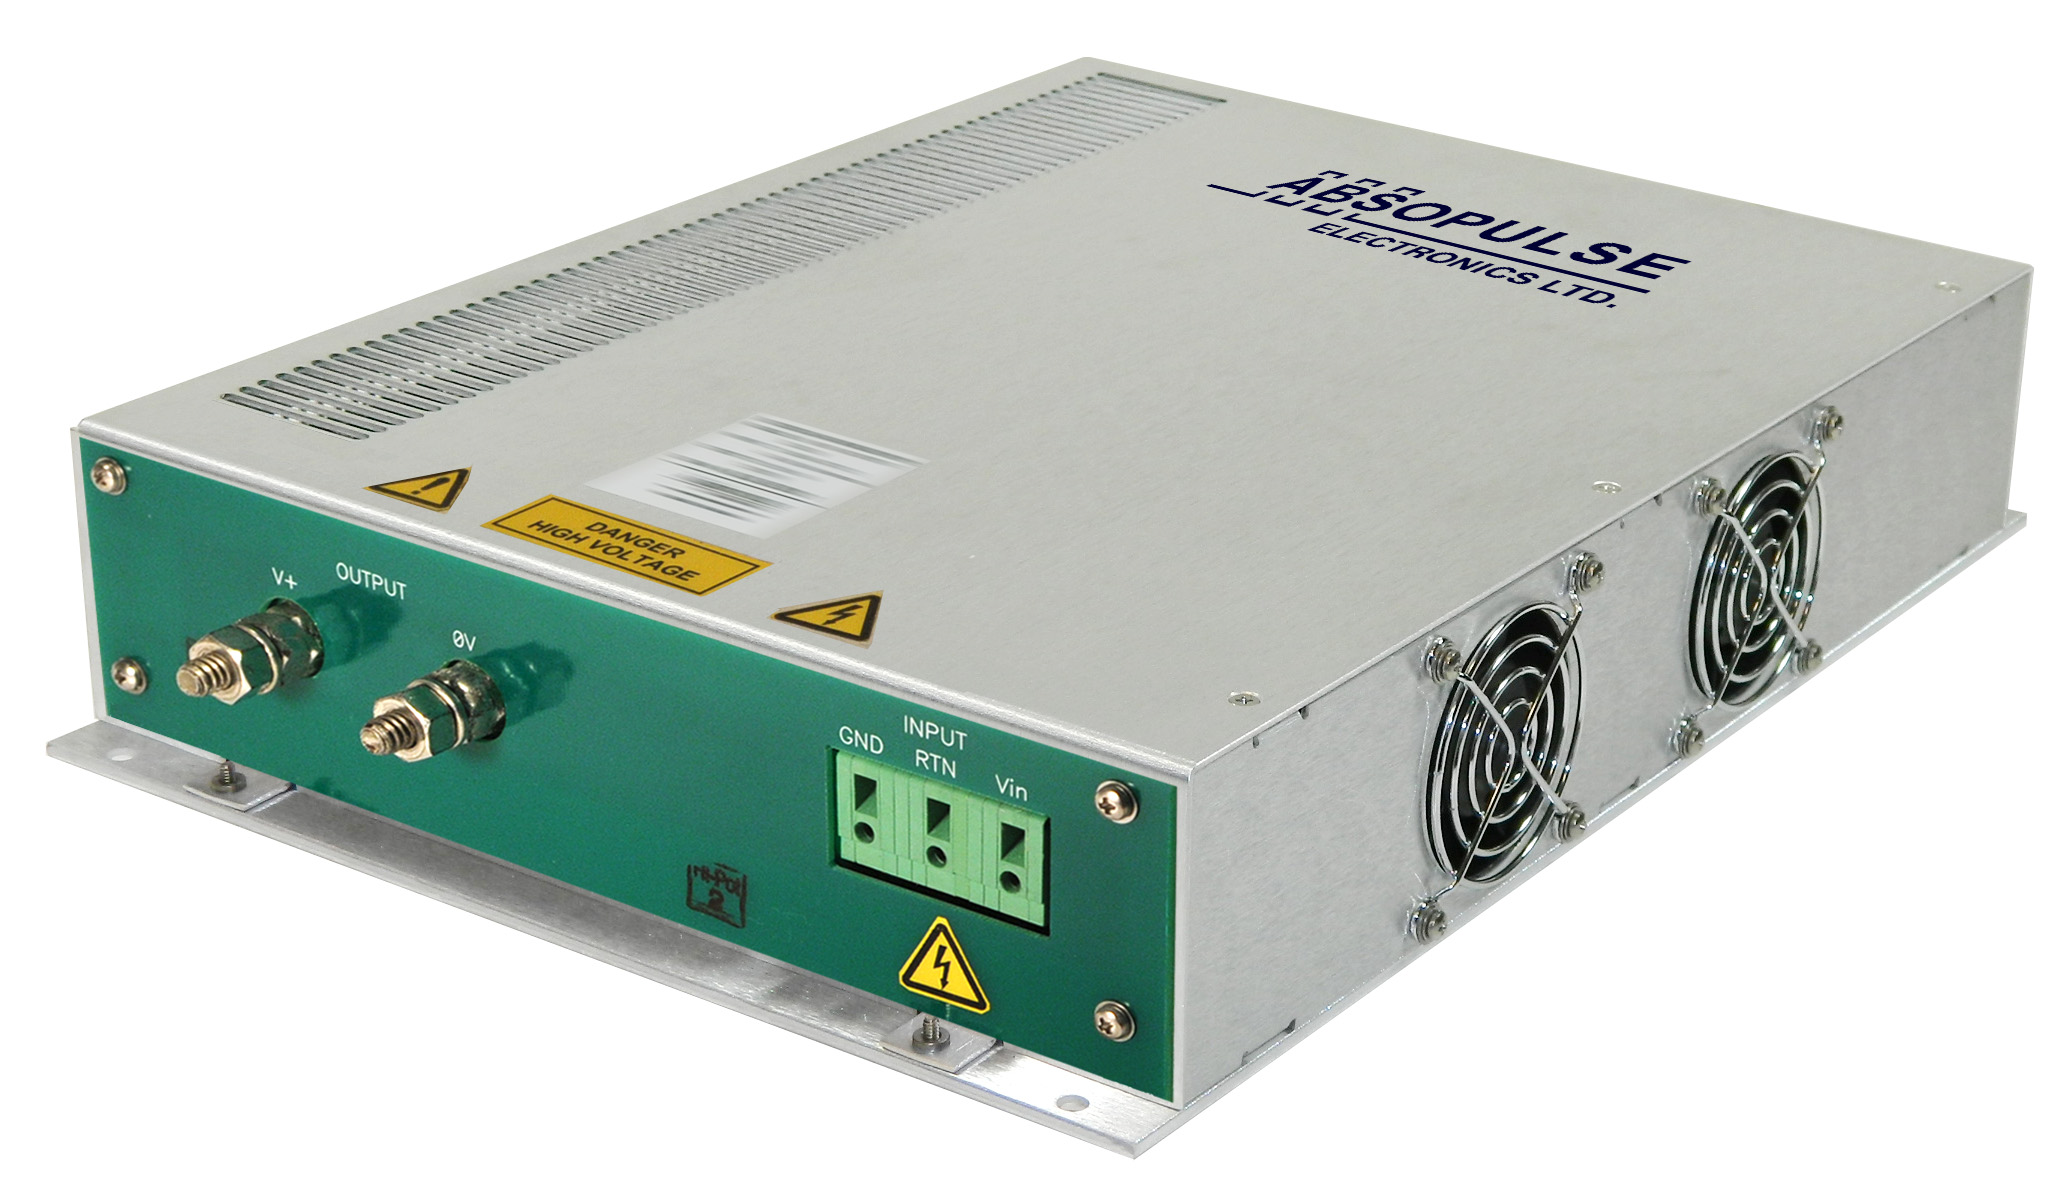 800Vdc Input Voltage DC-DC Converters Deliver up to 2000W